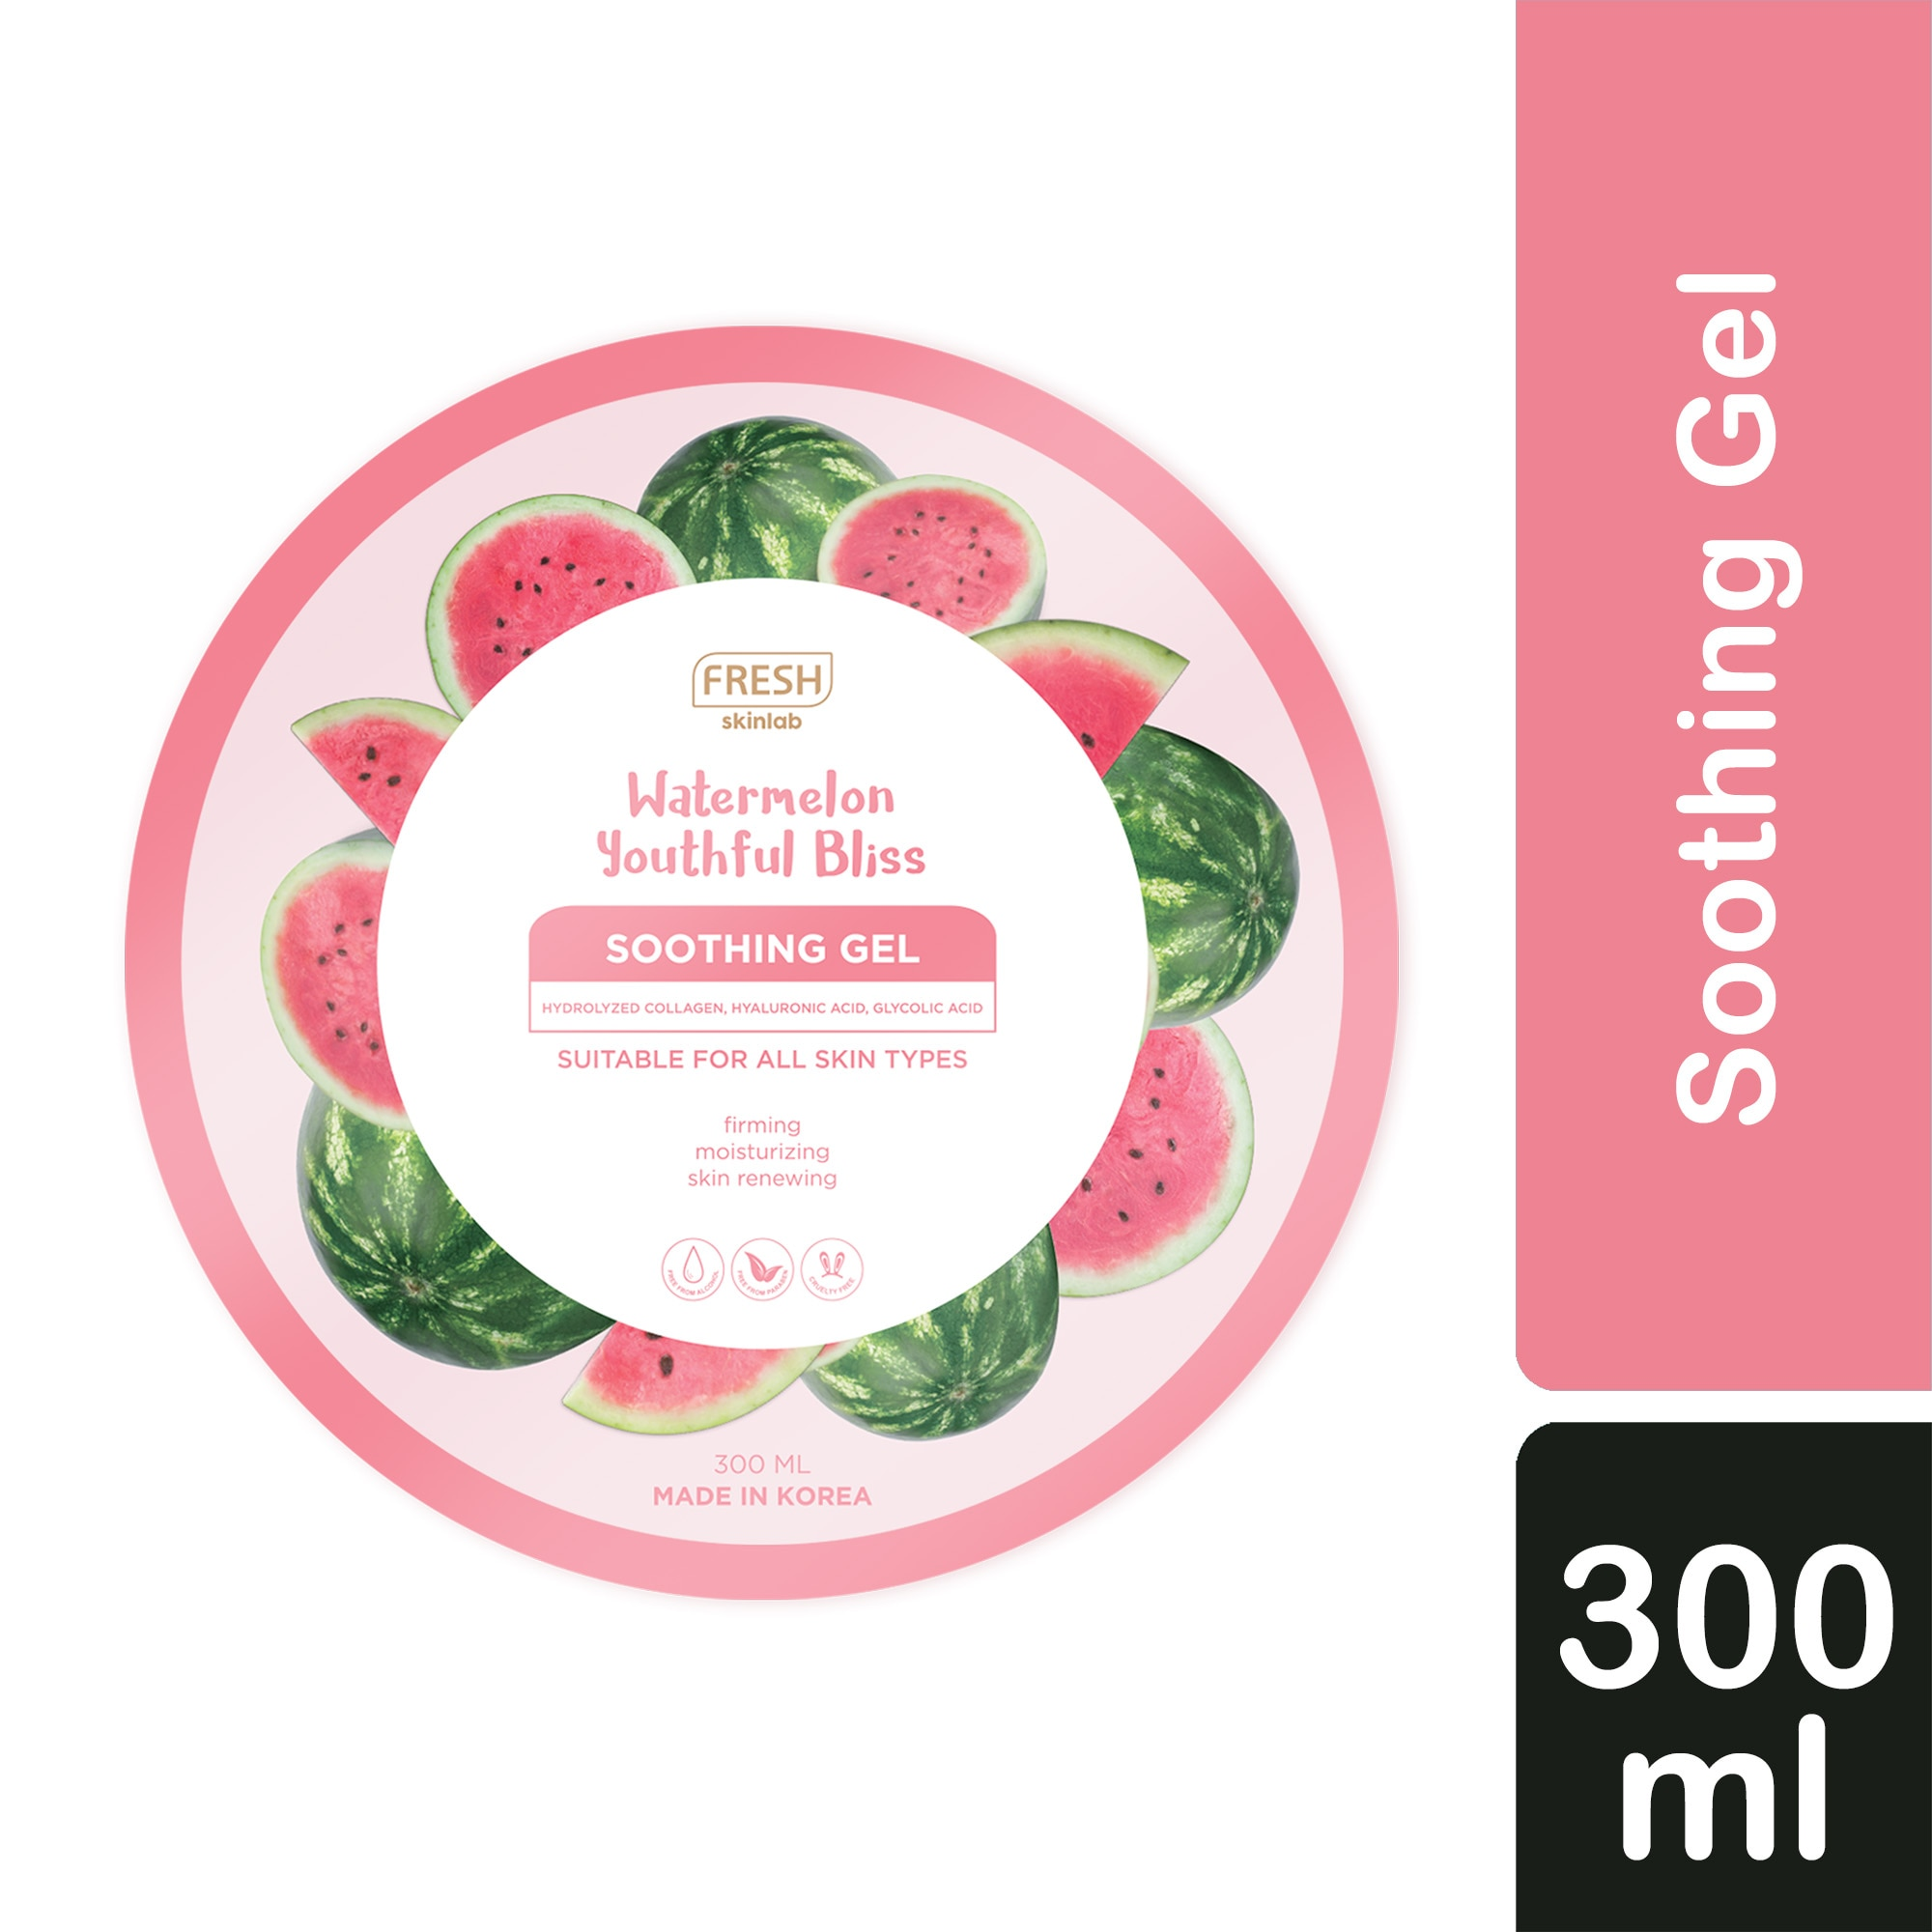 Skinlab Watermelon Youthful Bliss Soothing Gel 300ml